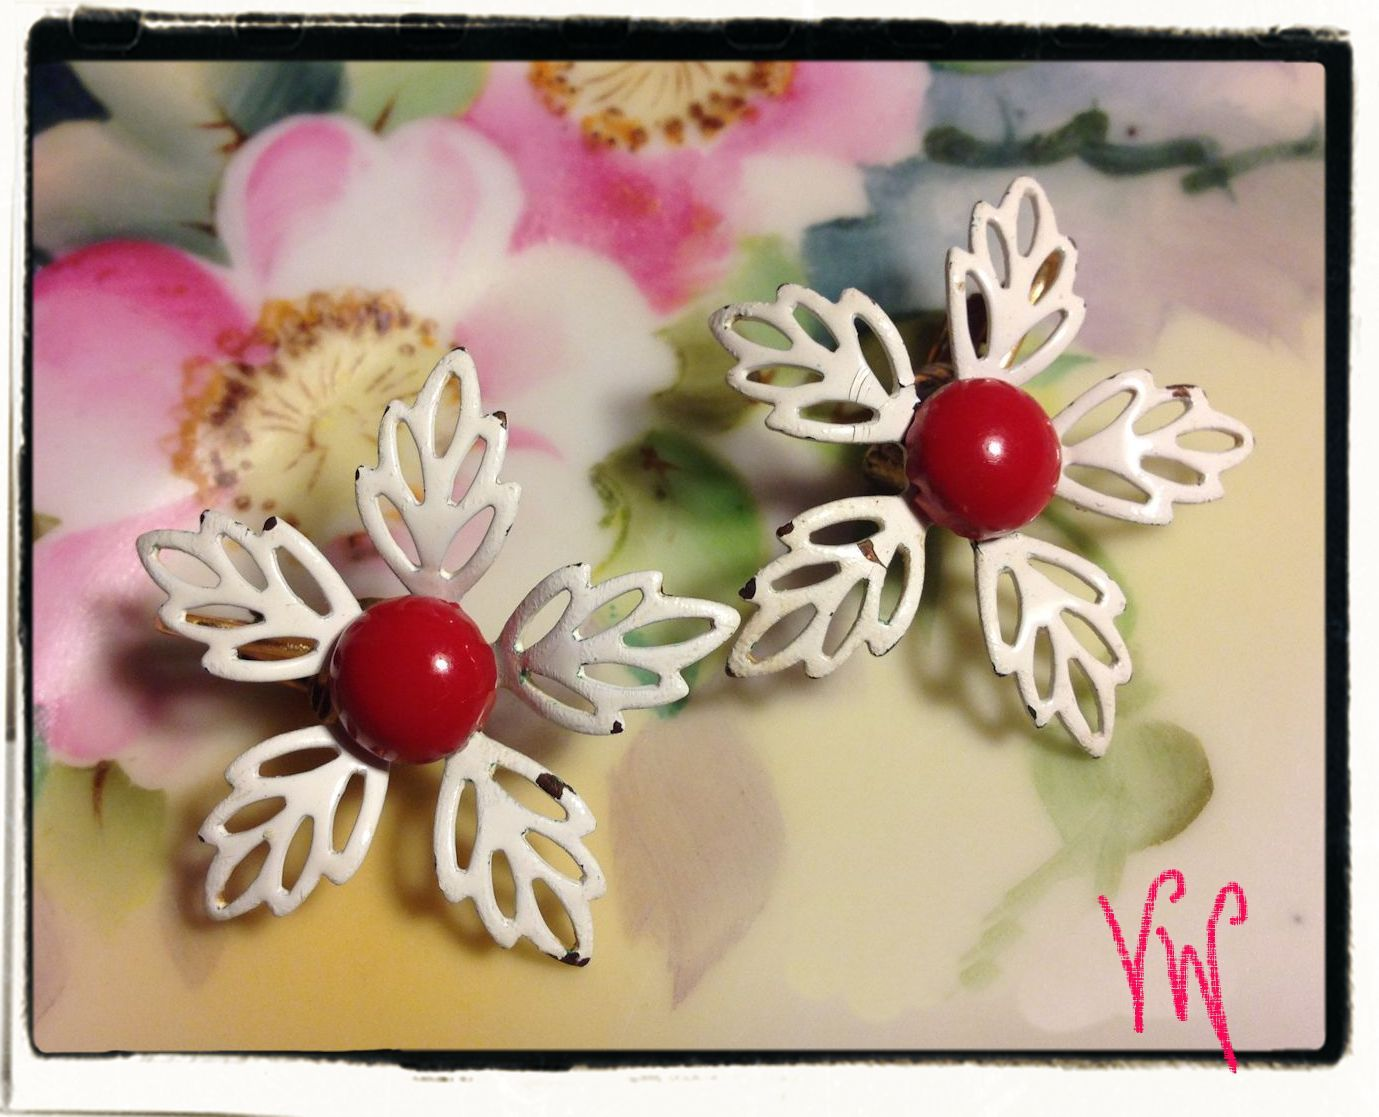 VTG 50s/60s White Filigree Petaled Enamel Flowers/Red Centers Clip On Earrings